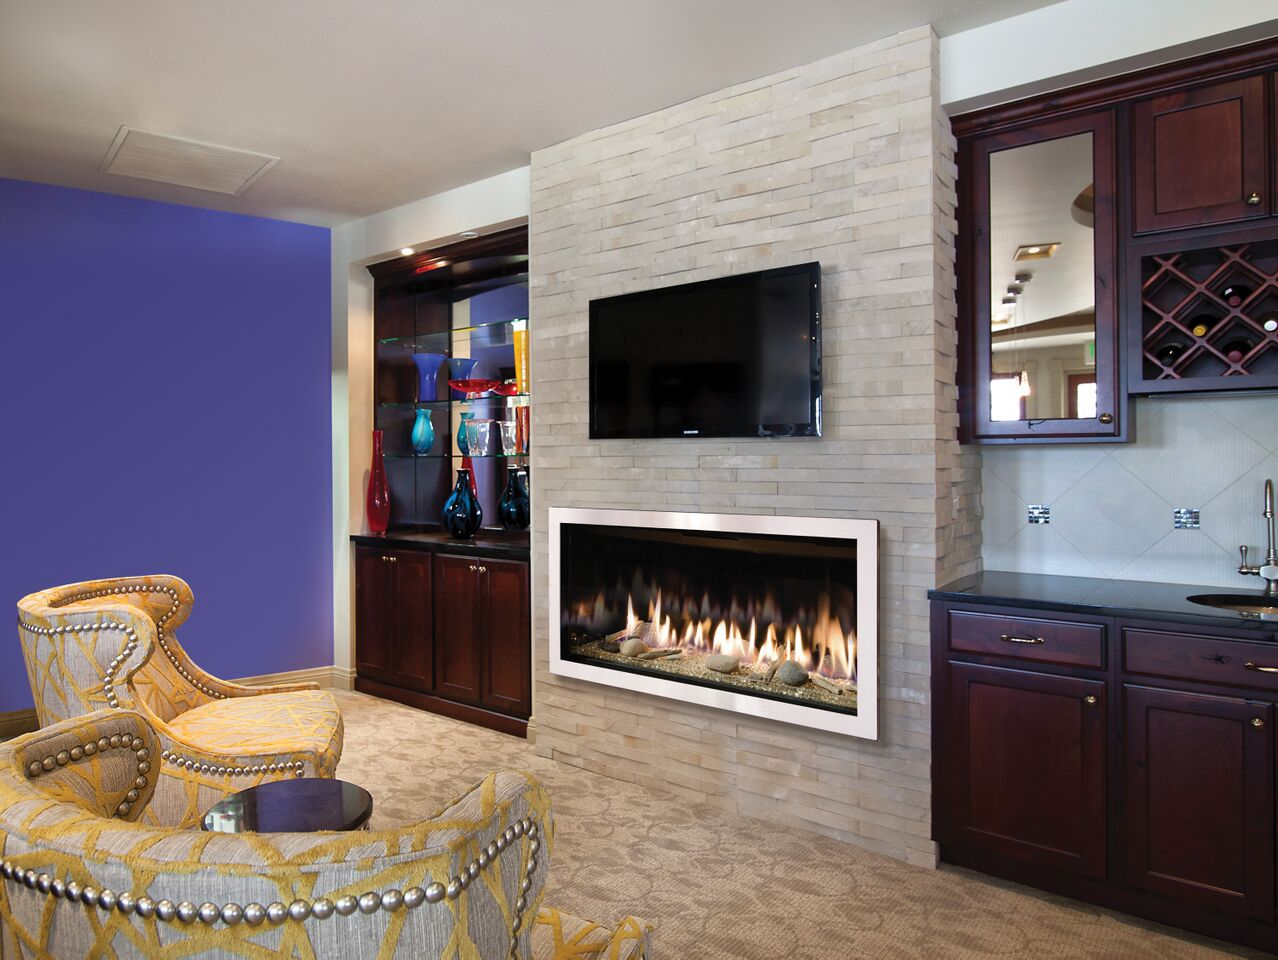 Contemporary Gas Fireplace - Kozy Slayton